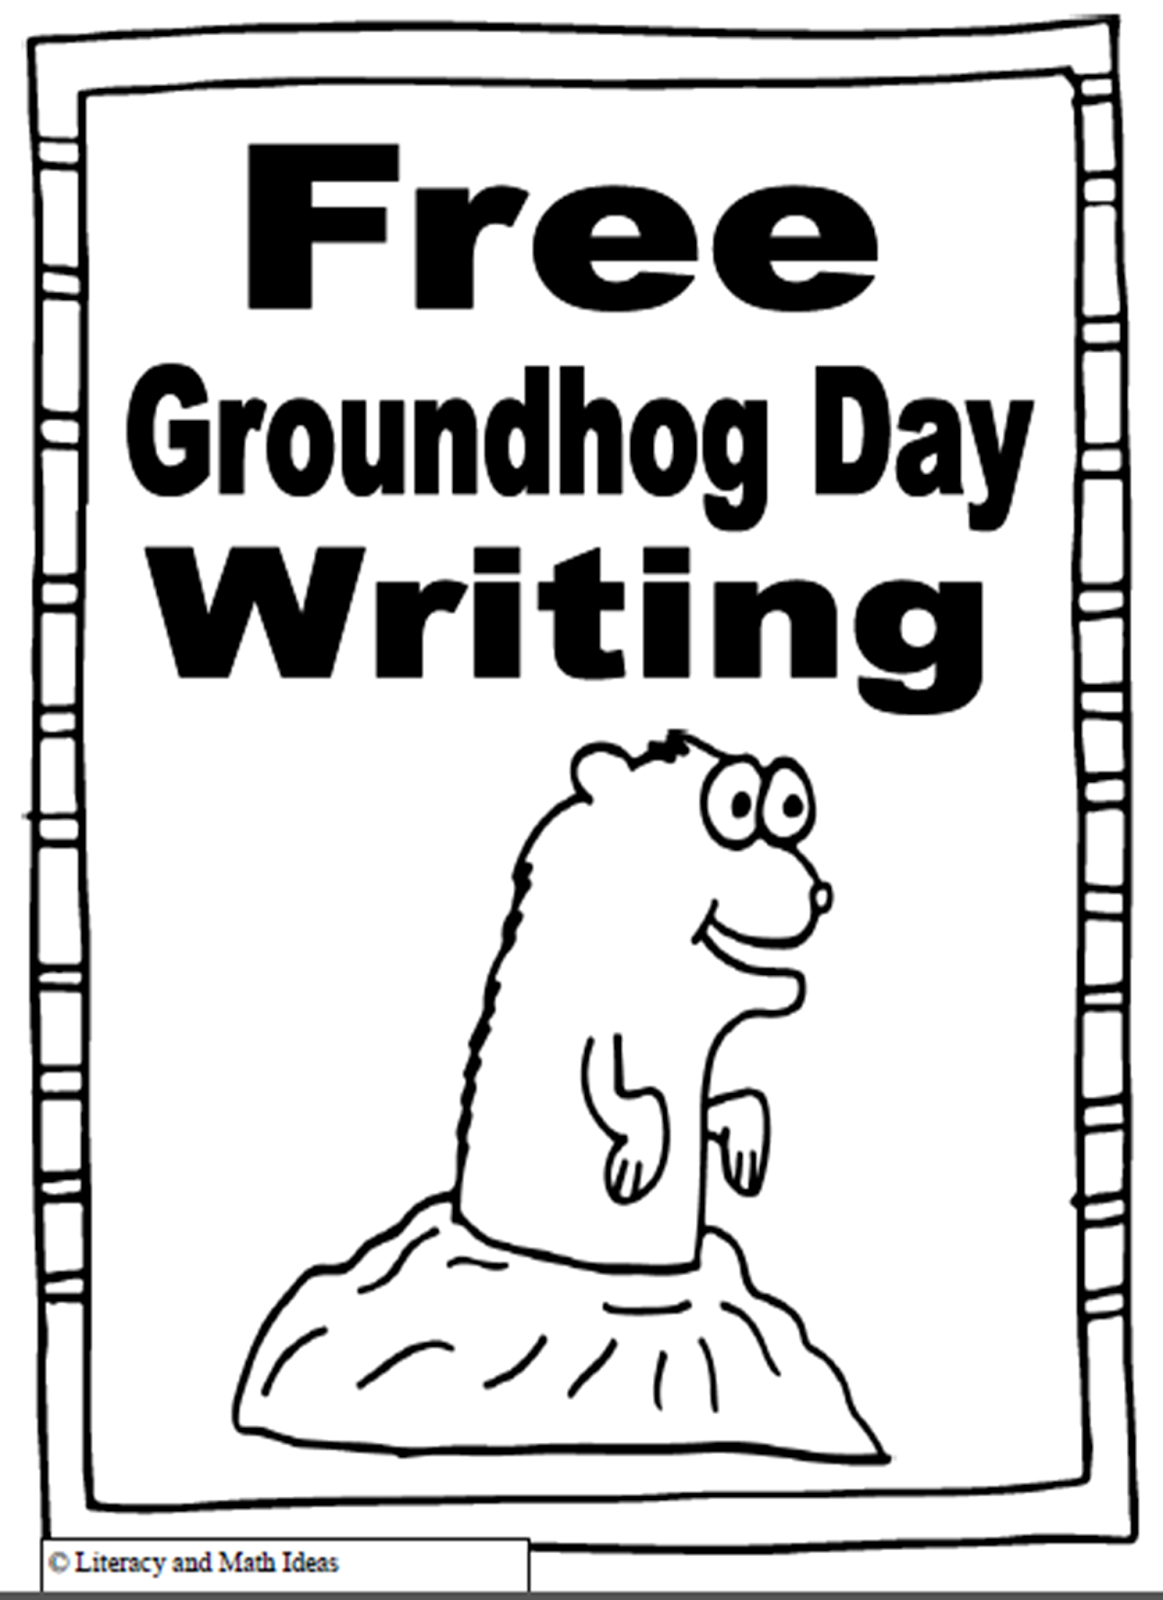 Literacy & Math Ideas: Free Groundhog Day Writing